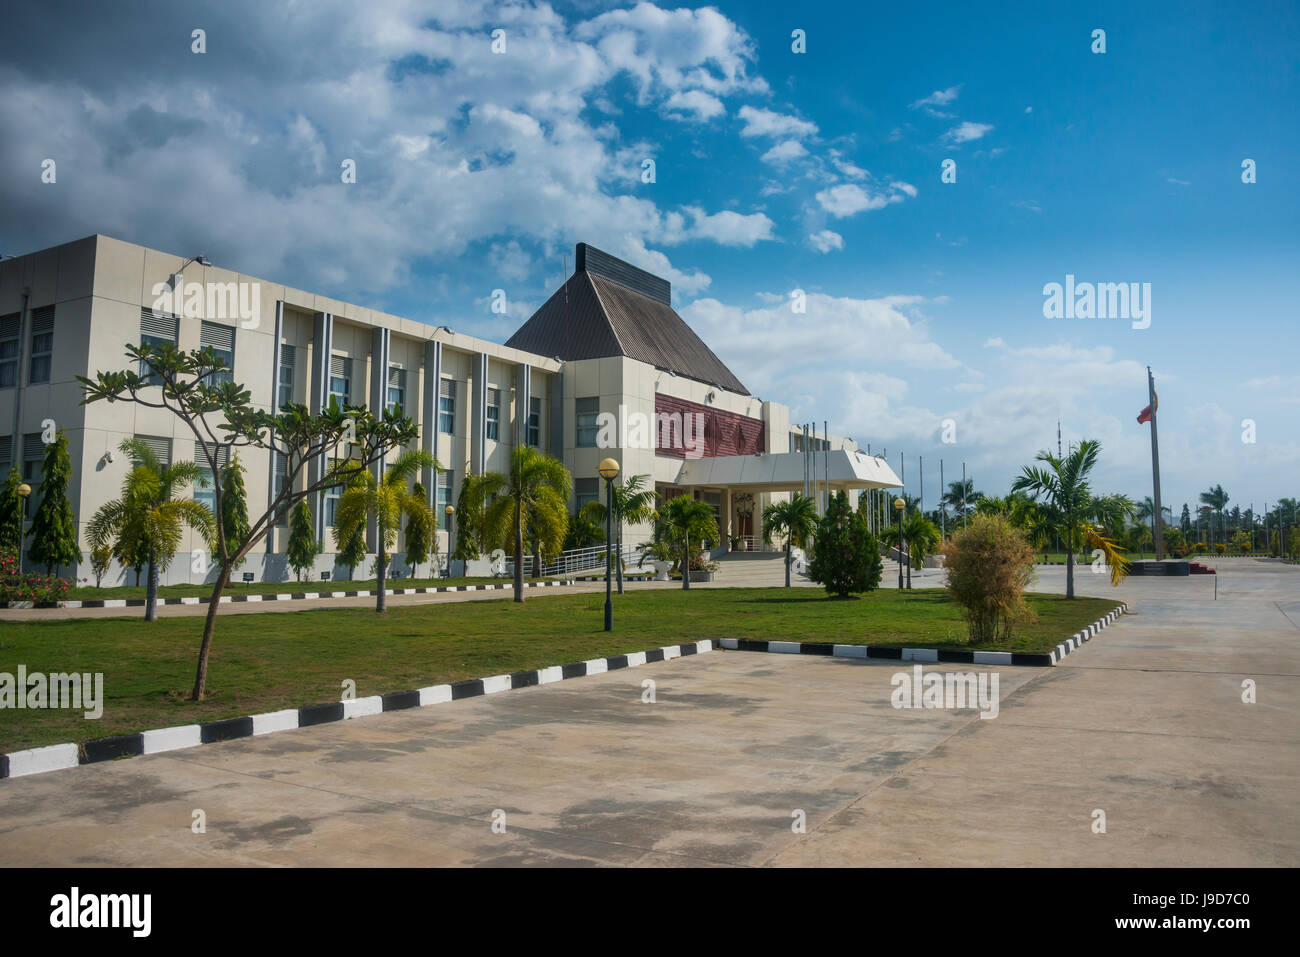 Presidential Palace of Dili, East Timor, Southeast Asia, Asia - Stock Image